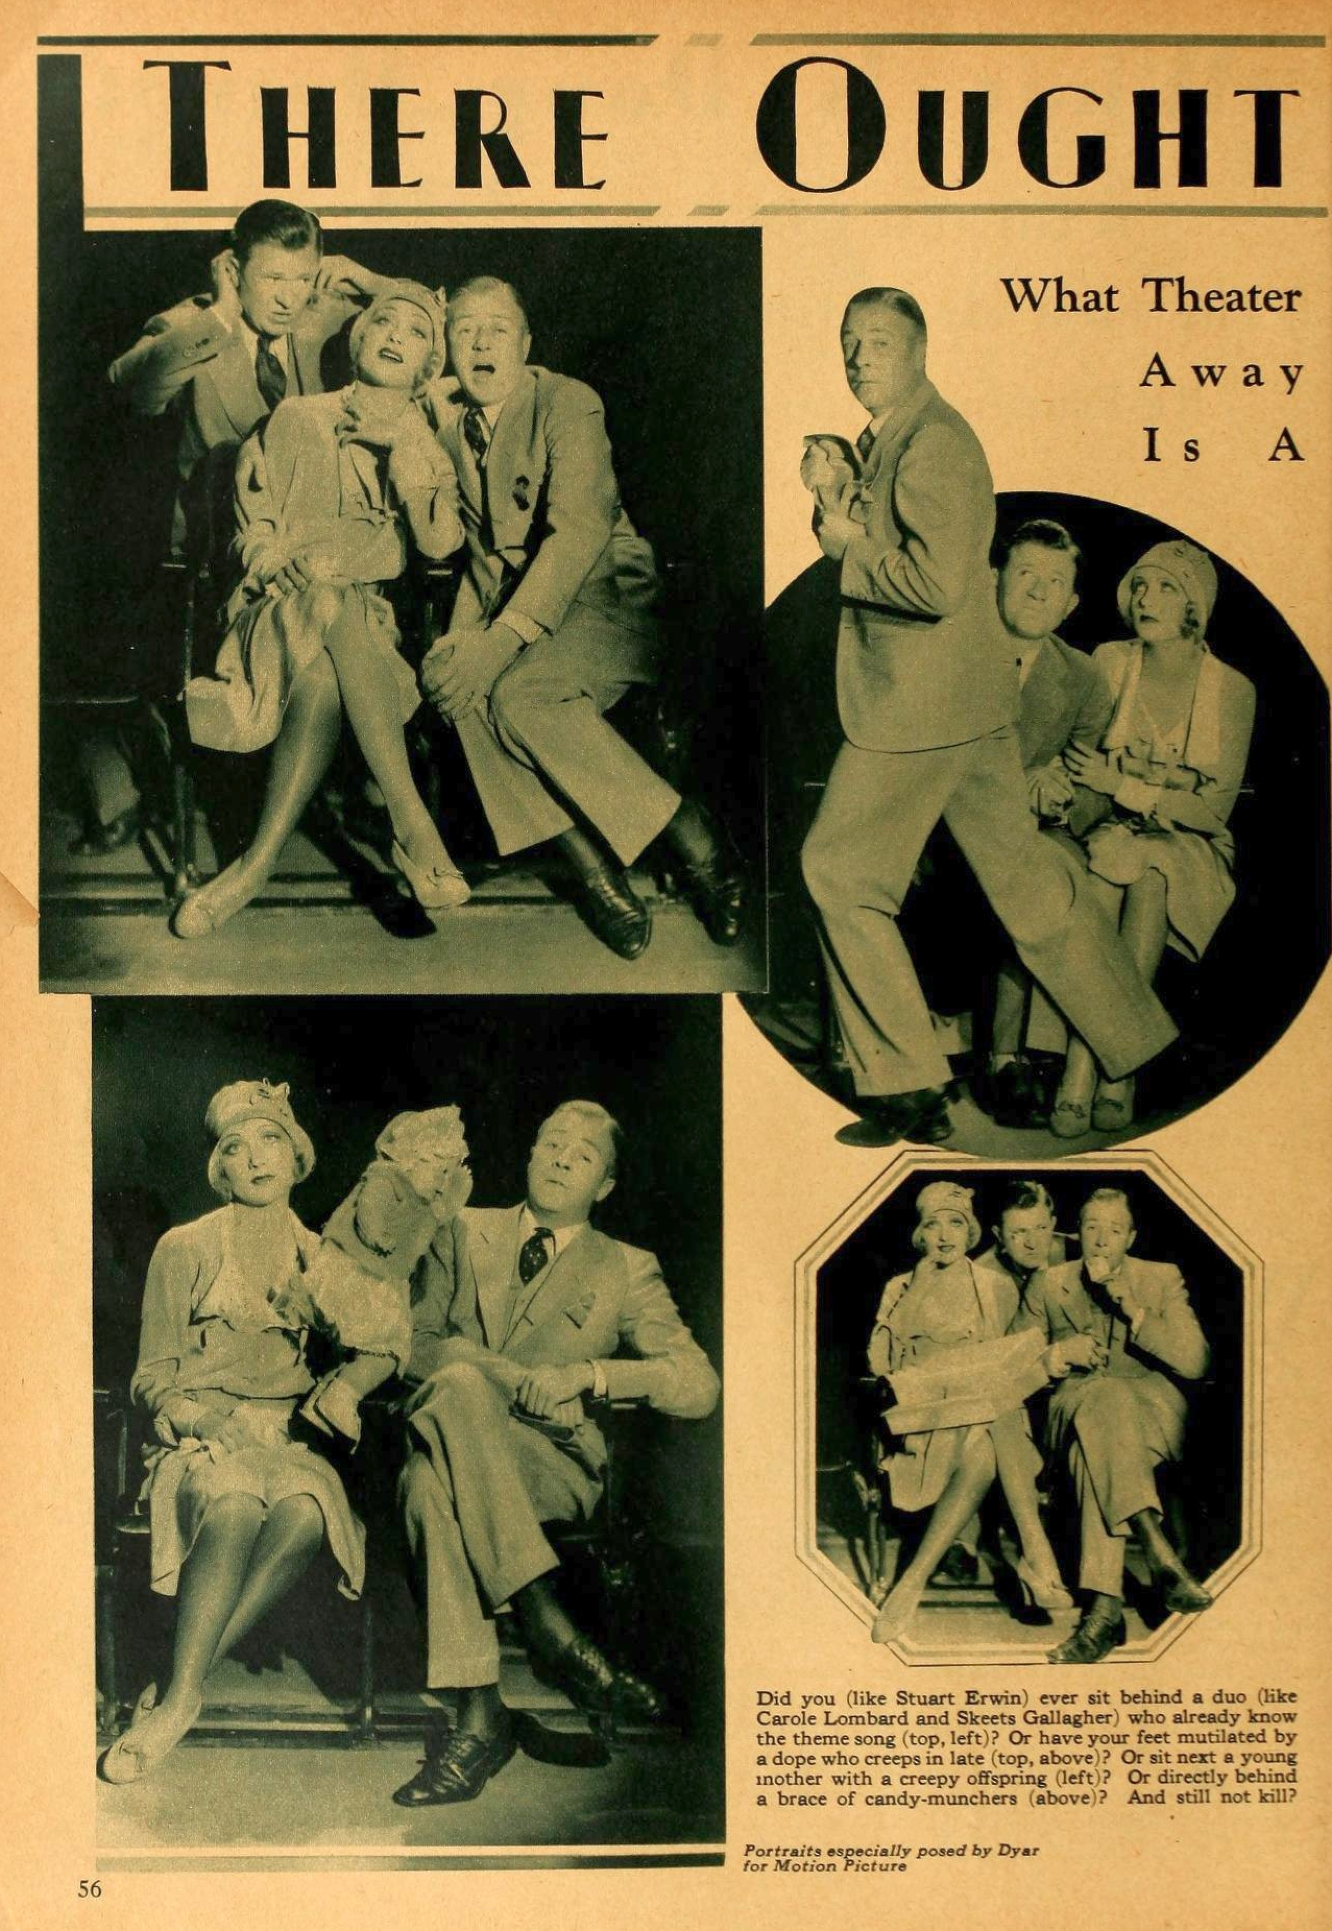 carole lombard motion picture feb 1931 there ought to be a law 00a